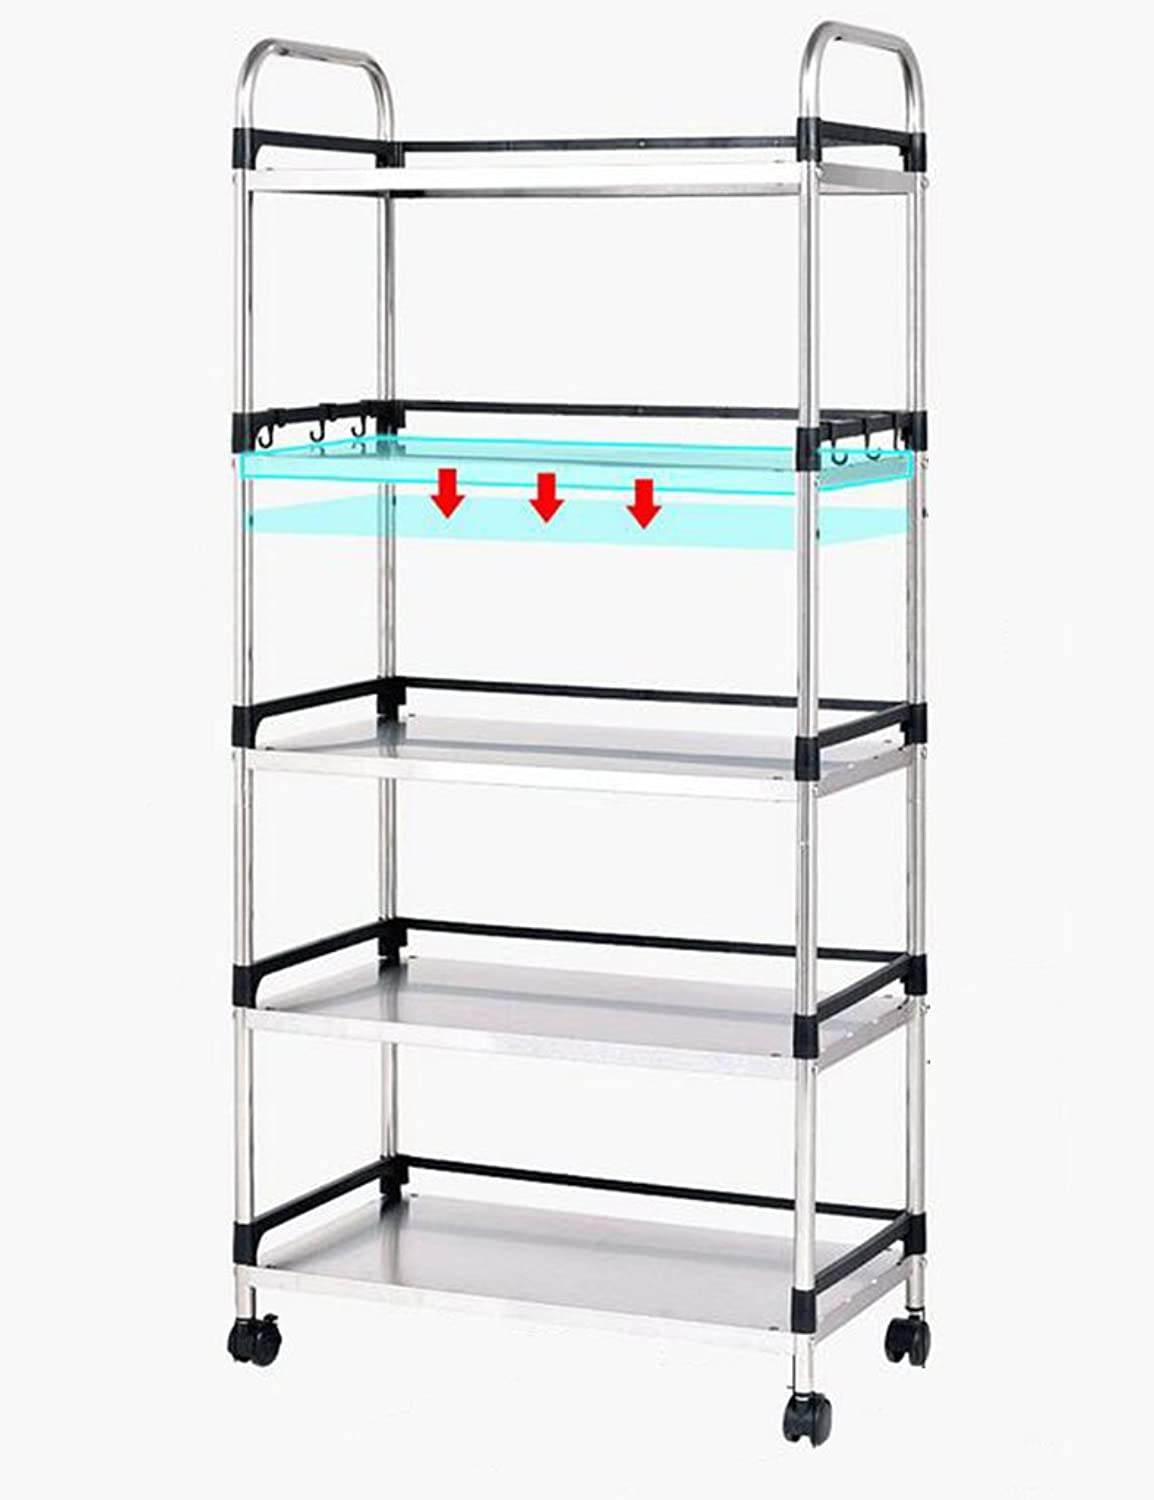 5-Tier Stainless Steel Intermediate Plate Adjustable 5.5cm Microwave Oven Shelf Kitchen Articles Storage Rack Landing Multiple Layers Put The Pot Storage Rack